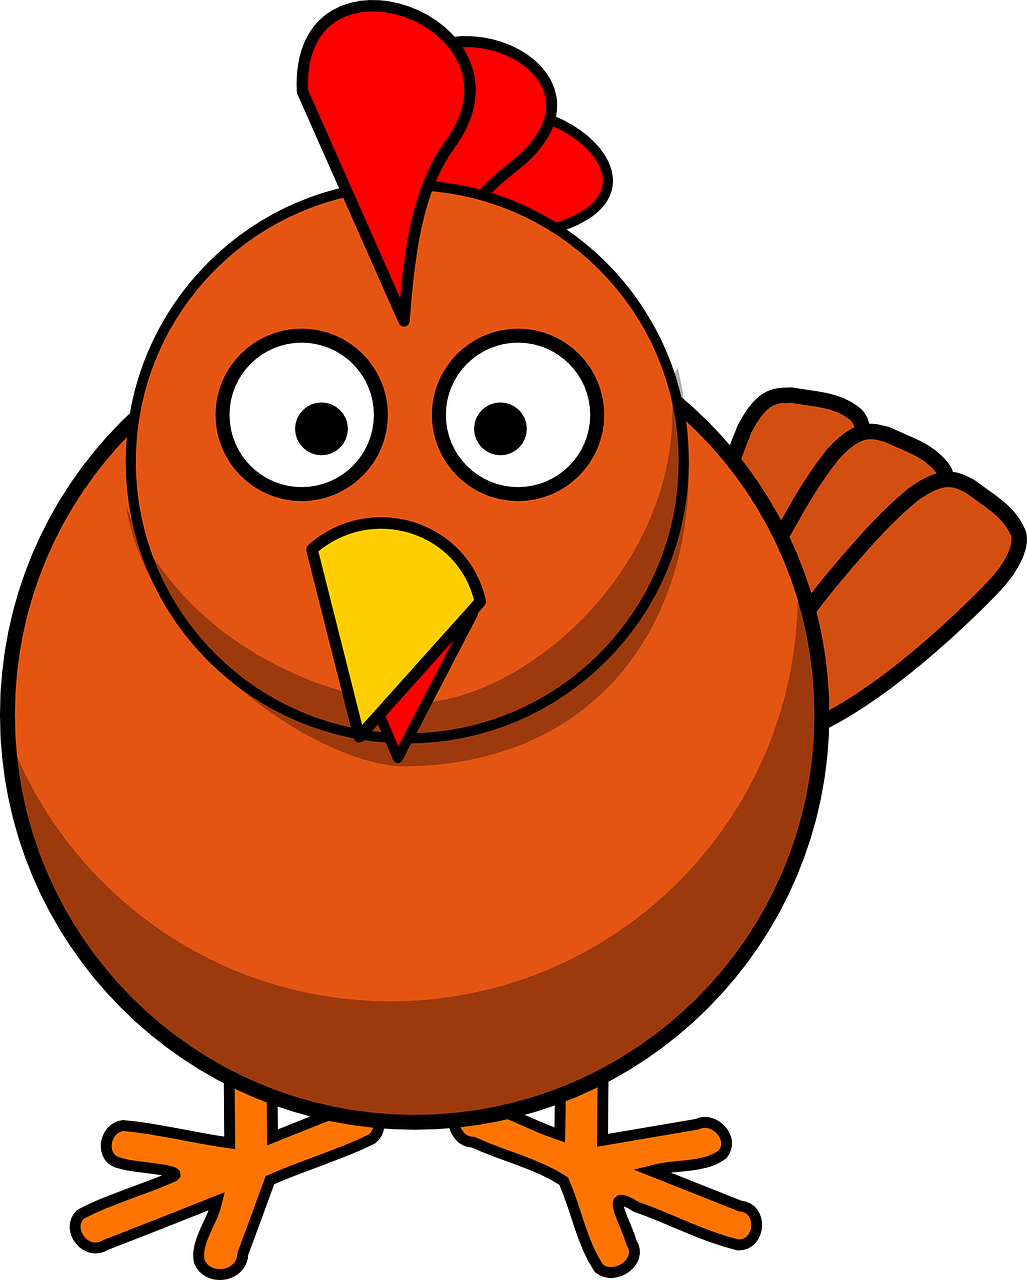 1027x1280 Phillips Community Church Chicken Dinner Is Oct. 13 Maine News